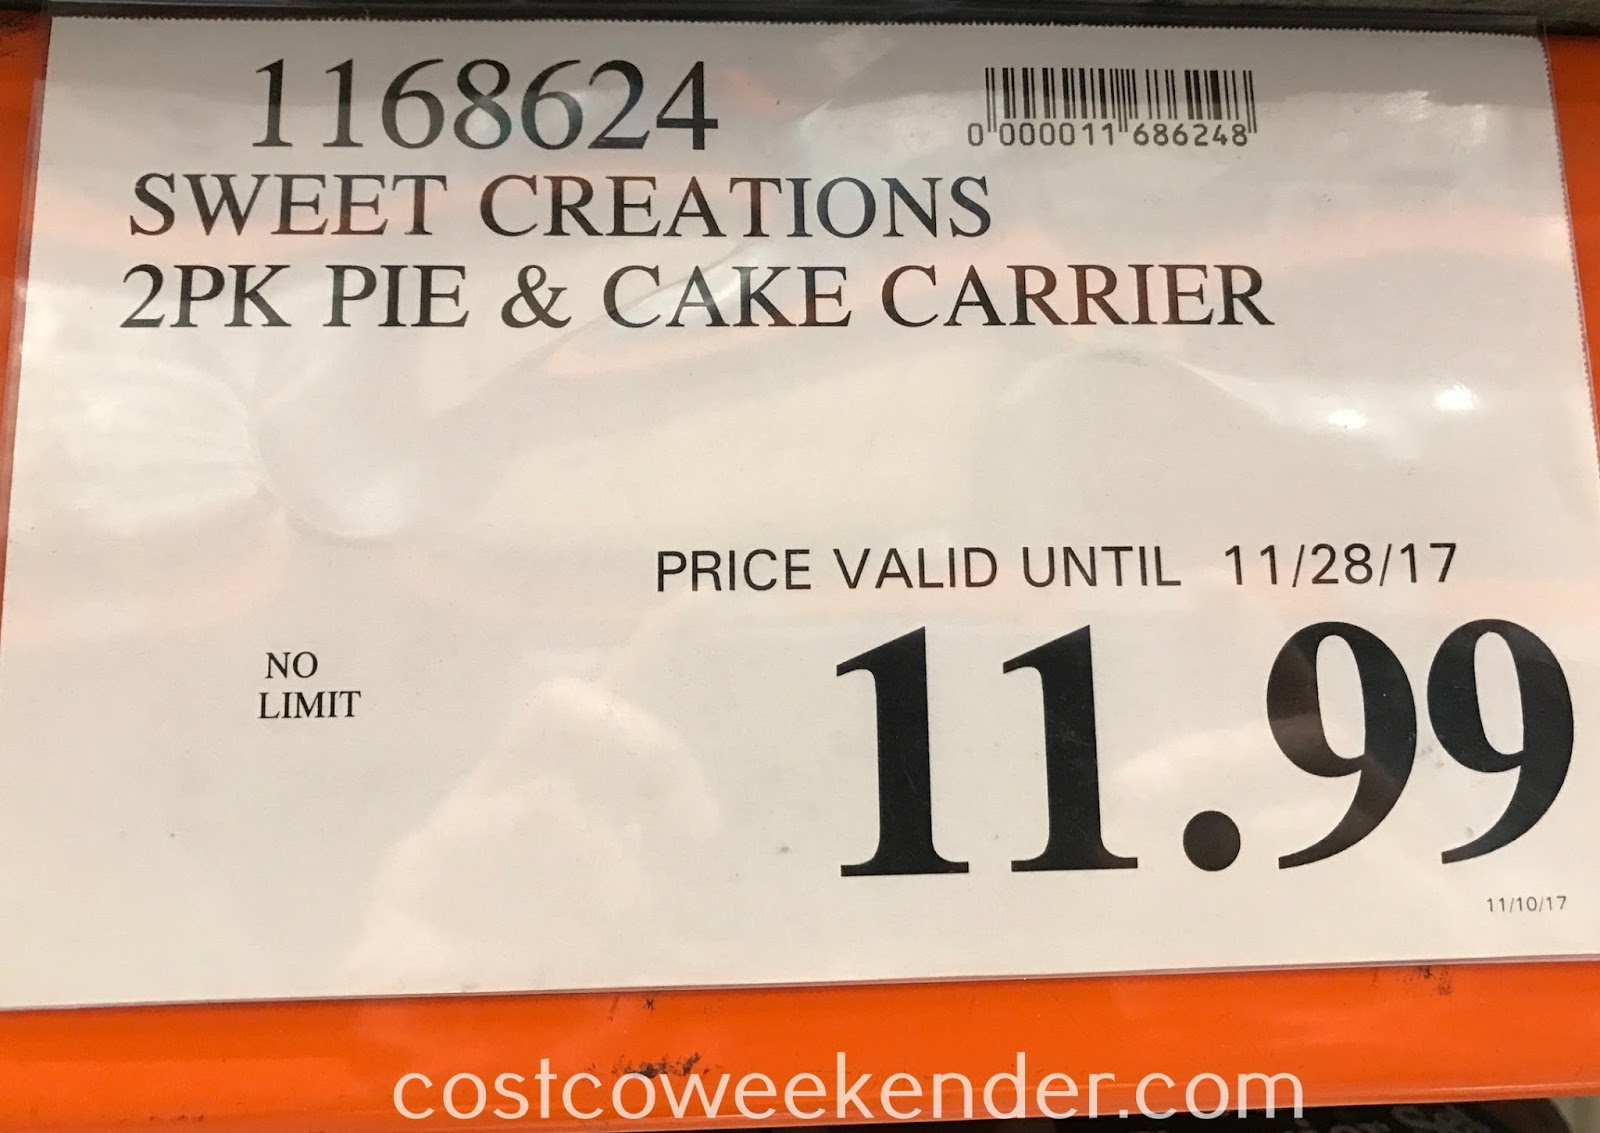 Costco 1168624 - Deal for the Sweet Creations Pie & Cake Carrier Set at Costco